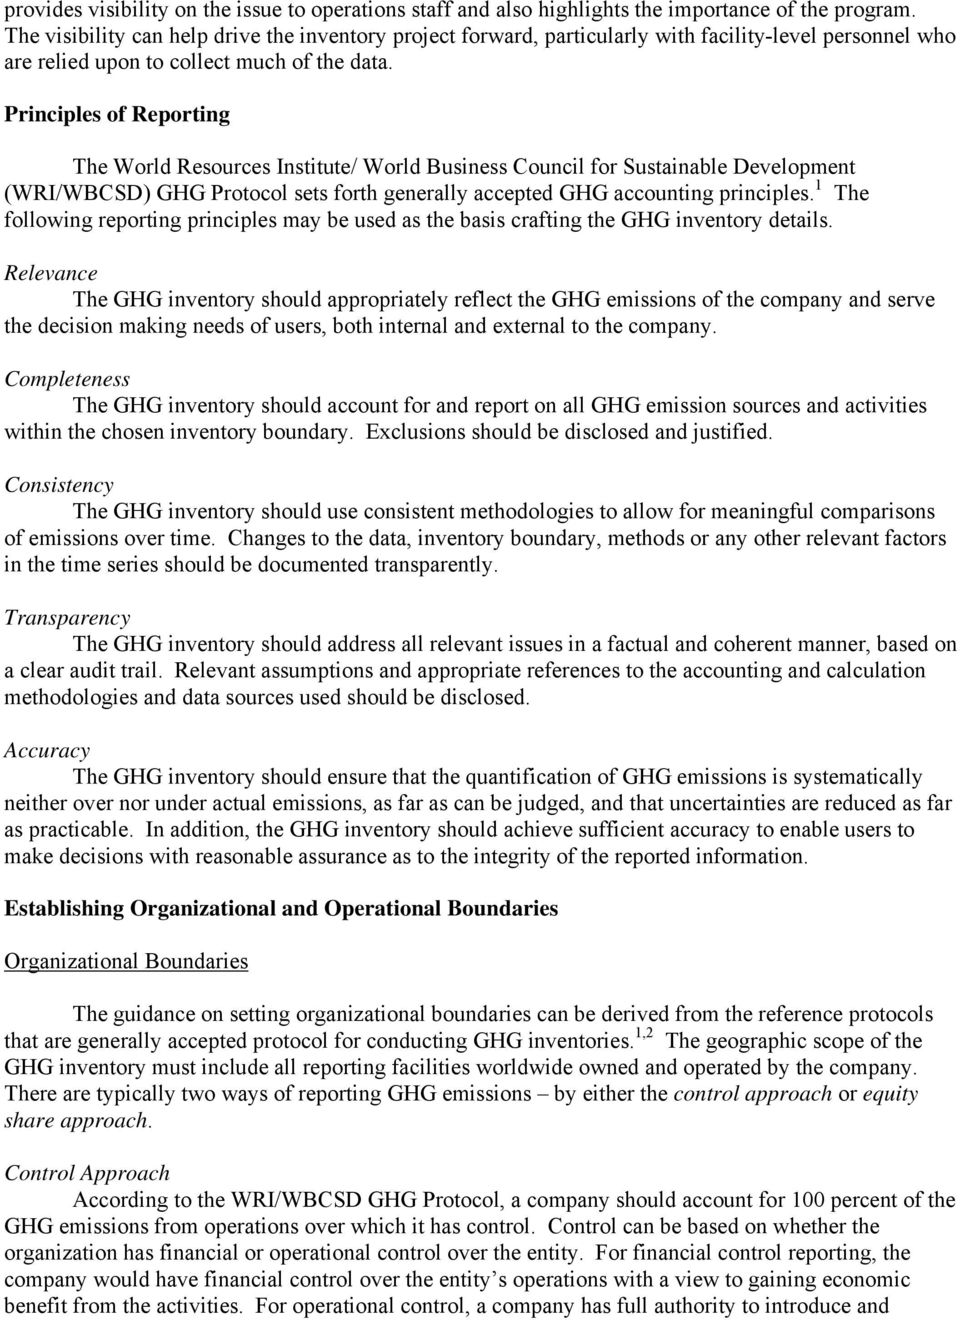 Principles of Reporting The World Resources Institute/ World Business Council for Sustainable Development (WRI/WBCSD) GHG Protocol sets forth generally accepted GHG accounting principles.